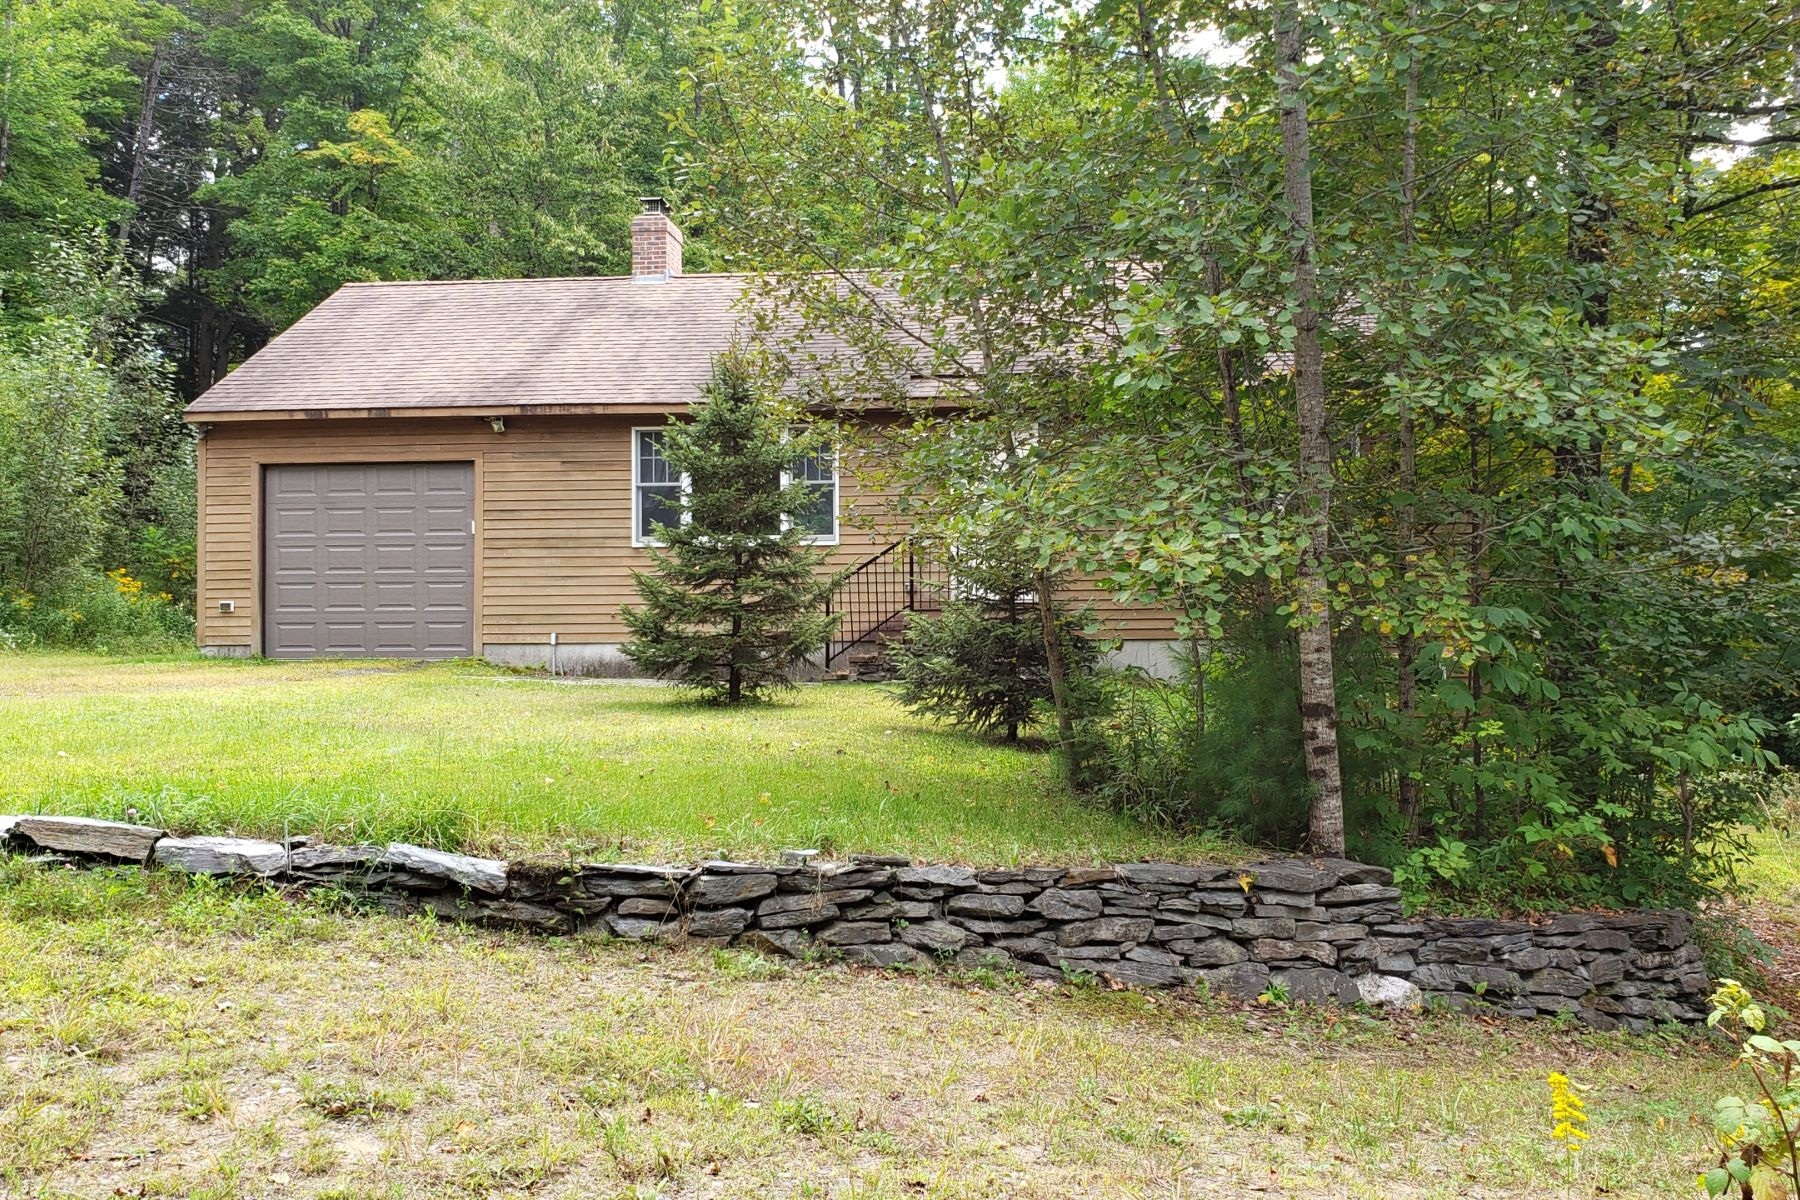 Single Family Homes for Sale at Two Bedroom Ranch in Bradford 4442 Waits River Rd Bradford, Vermont 05033 United States